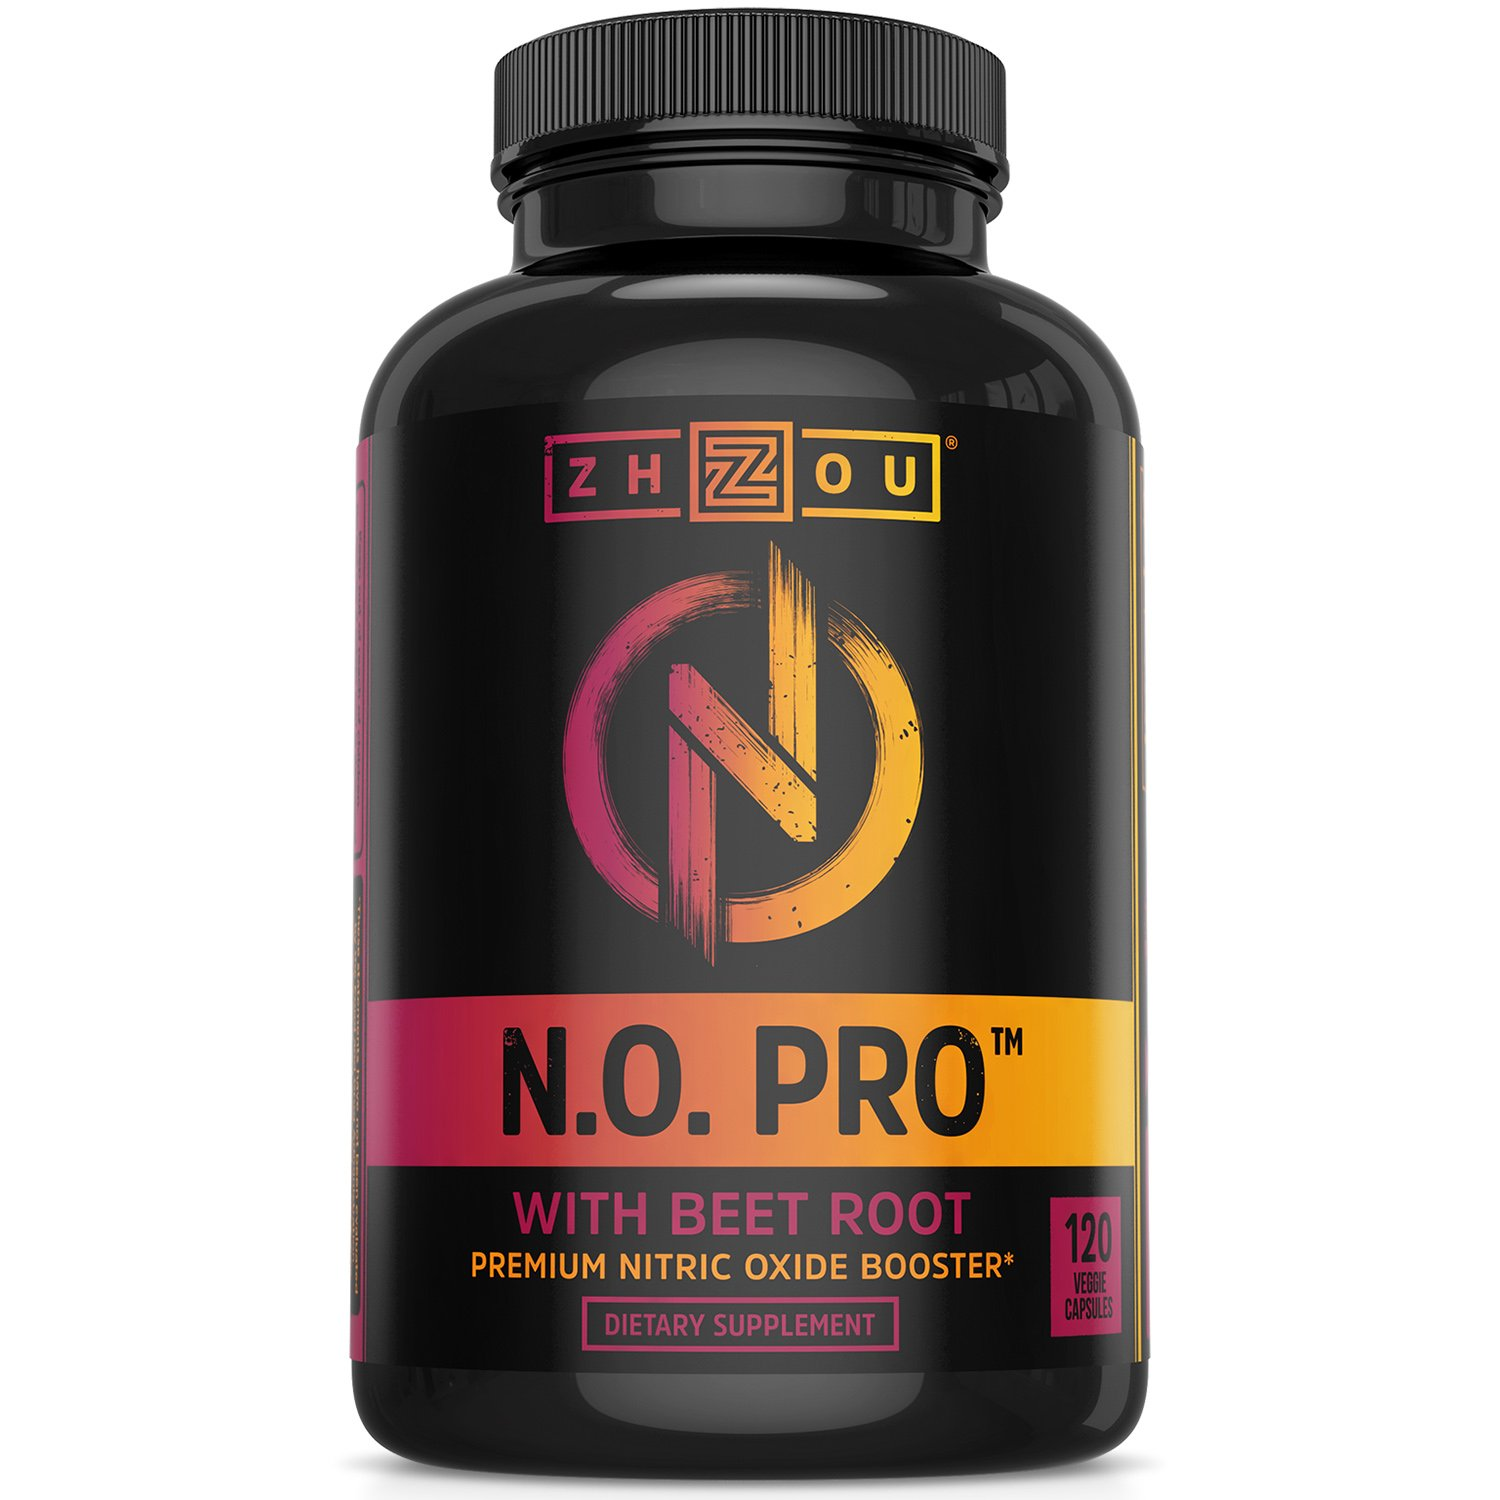 Nitric Oxide Supplement with L Arginine, Citrulline Malate, AAKG and Beet Root - Powerful N.O. Booster and Muscle Builder for Strength, Blood Flow and Endurance - 120 Veggie Capsules. by Zhou Nutrition